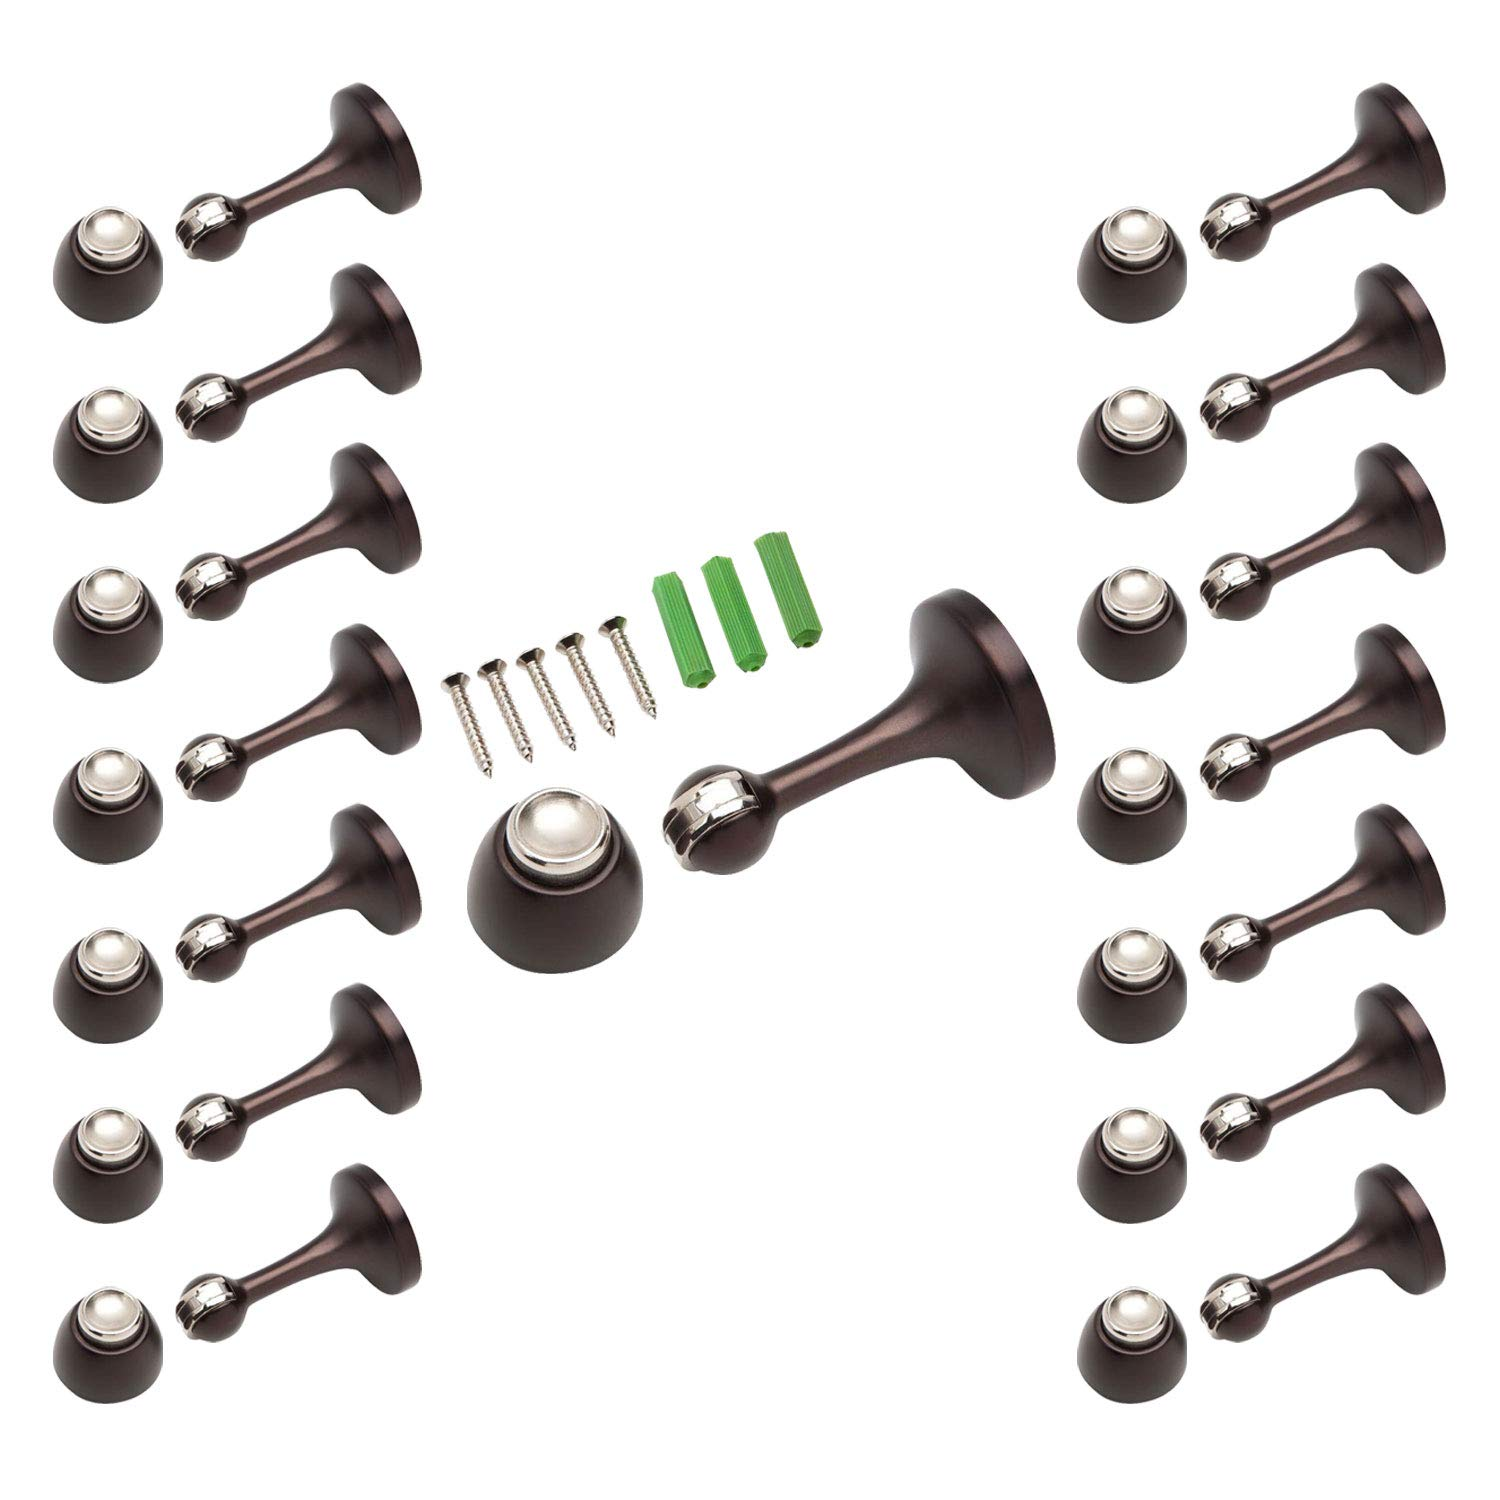 Magnetic Door Stop 3in. Catch Protects and Holds Premium-Grade (15-Pack, Oil-Rubbed Bronze) by Litepak